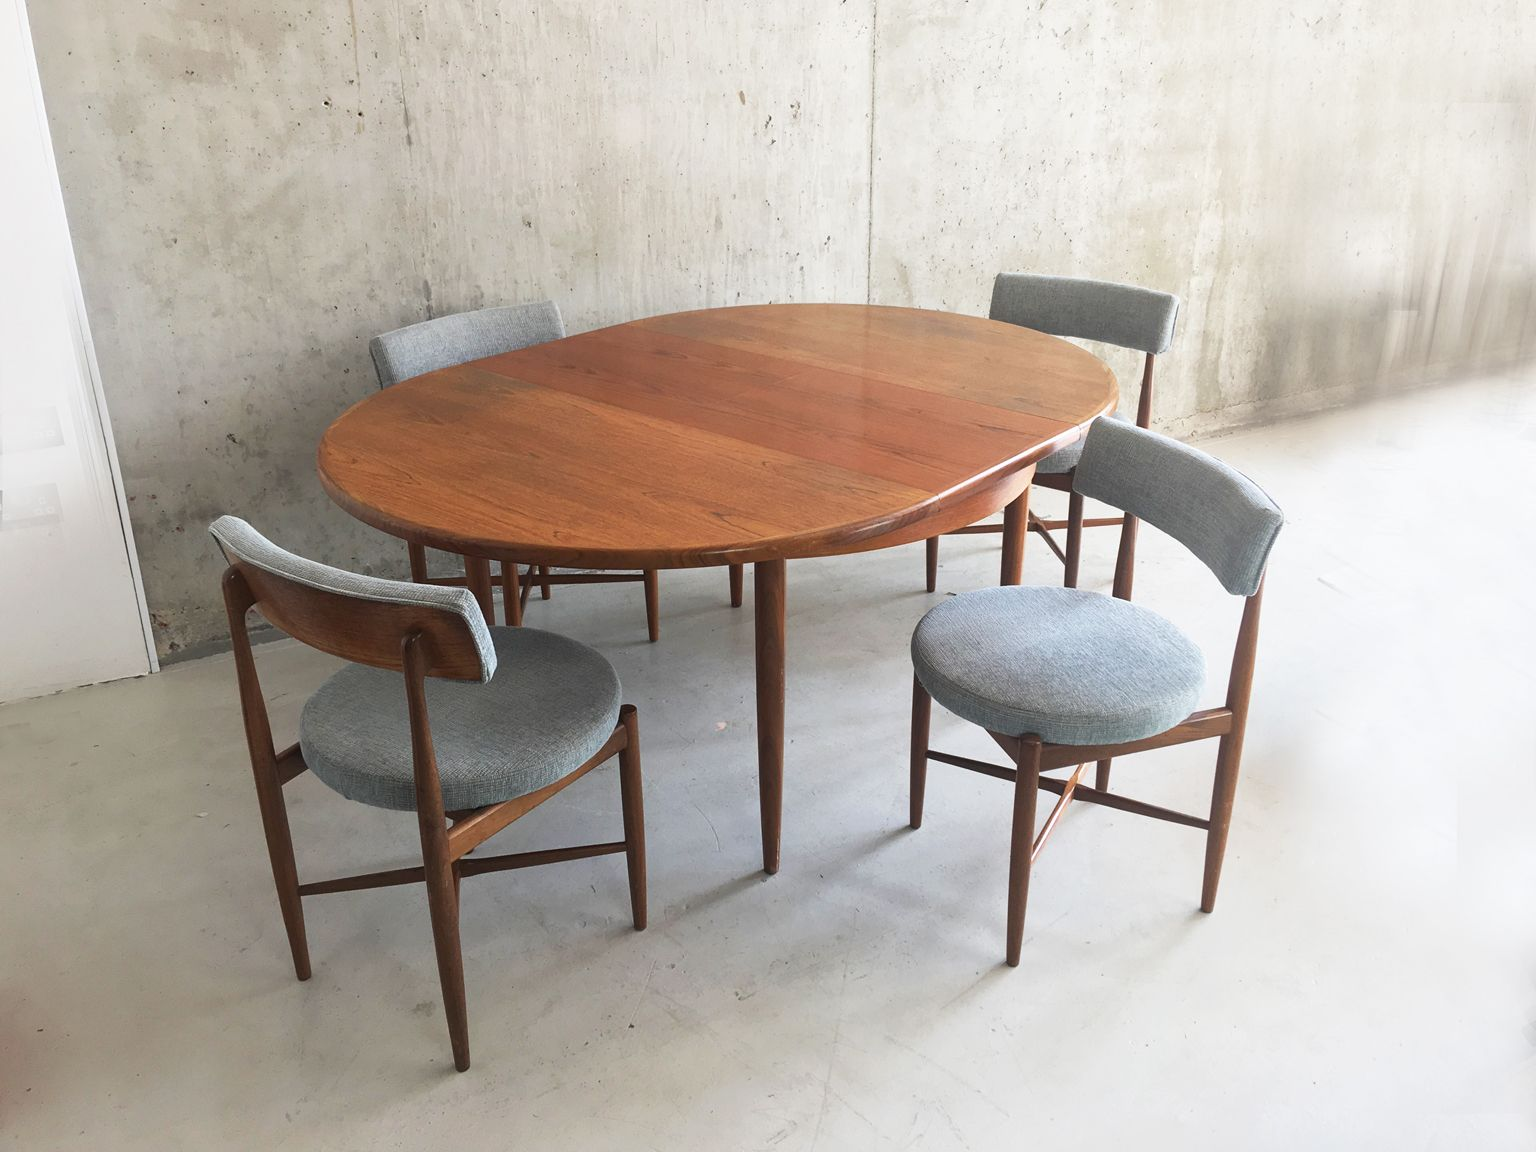 G plan dining table and chairs dining table g plan for G plan dining room furniture sale